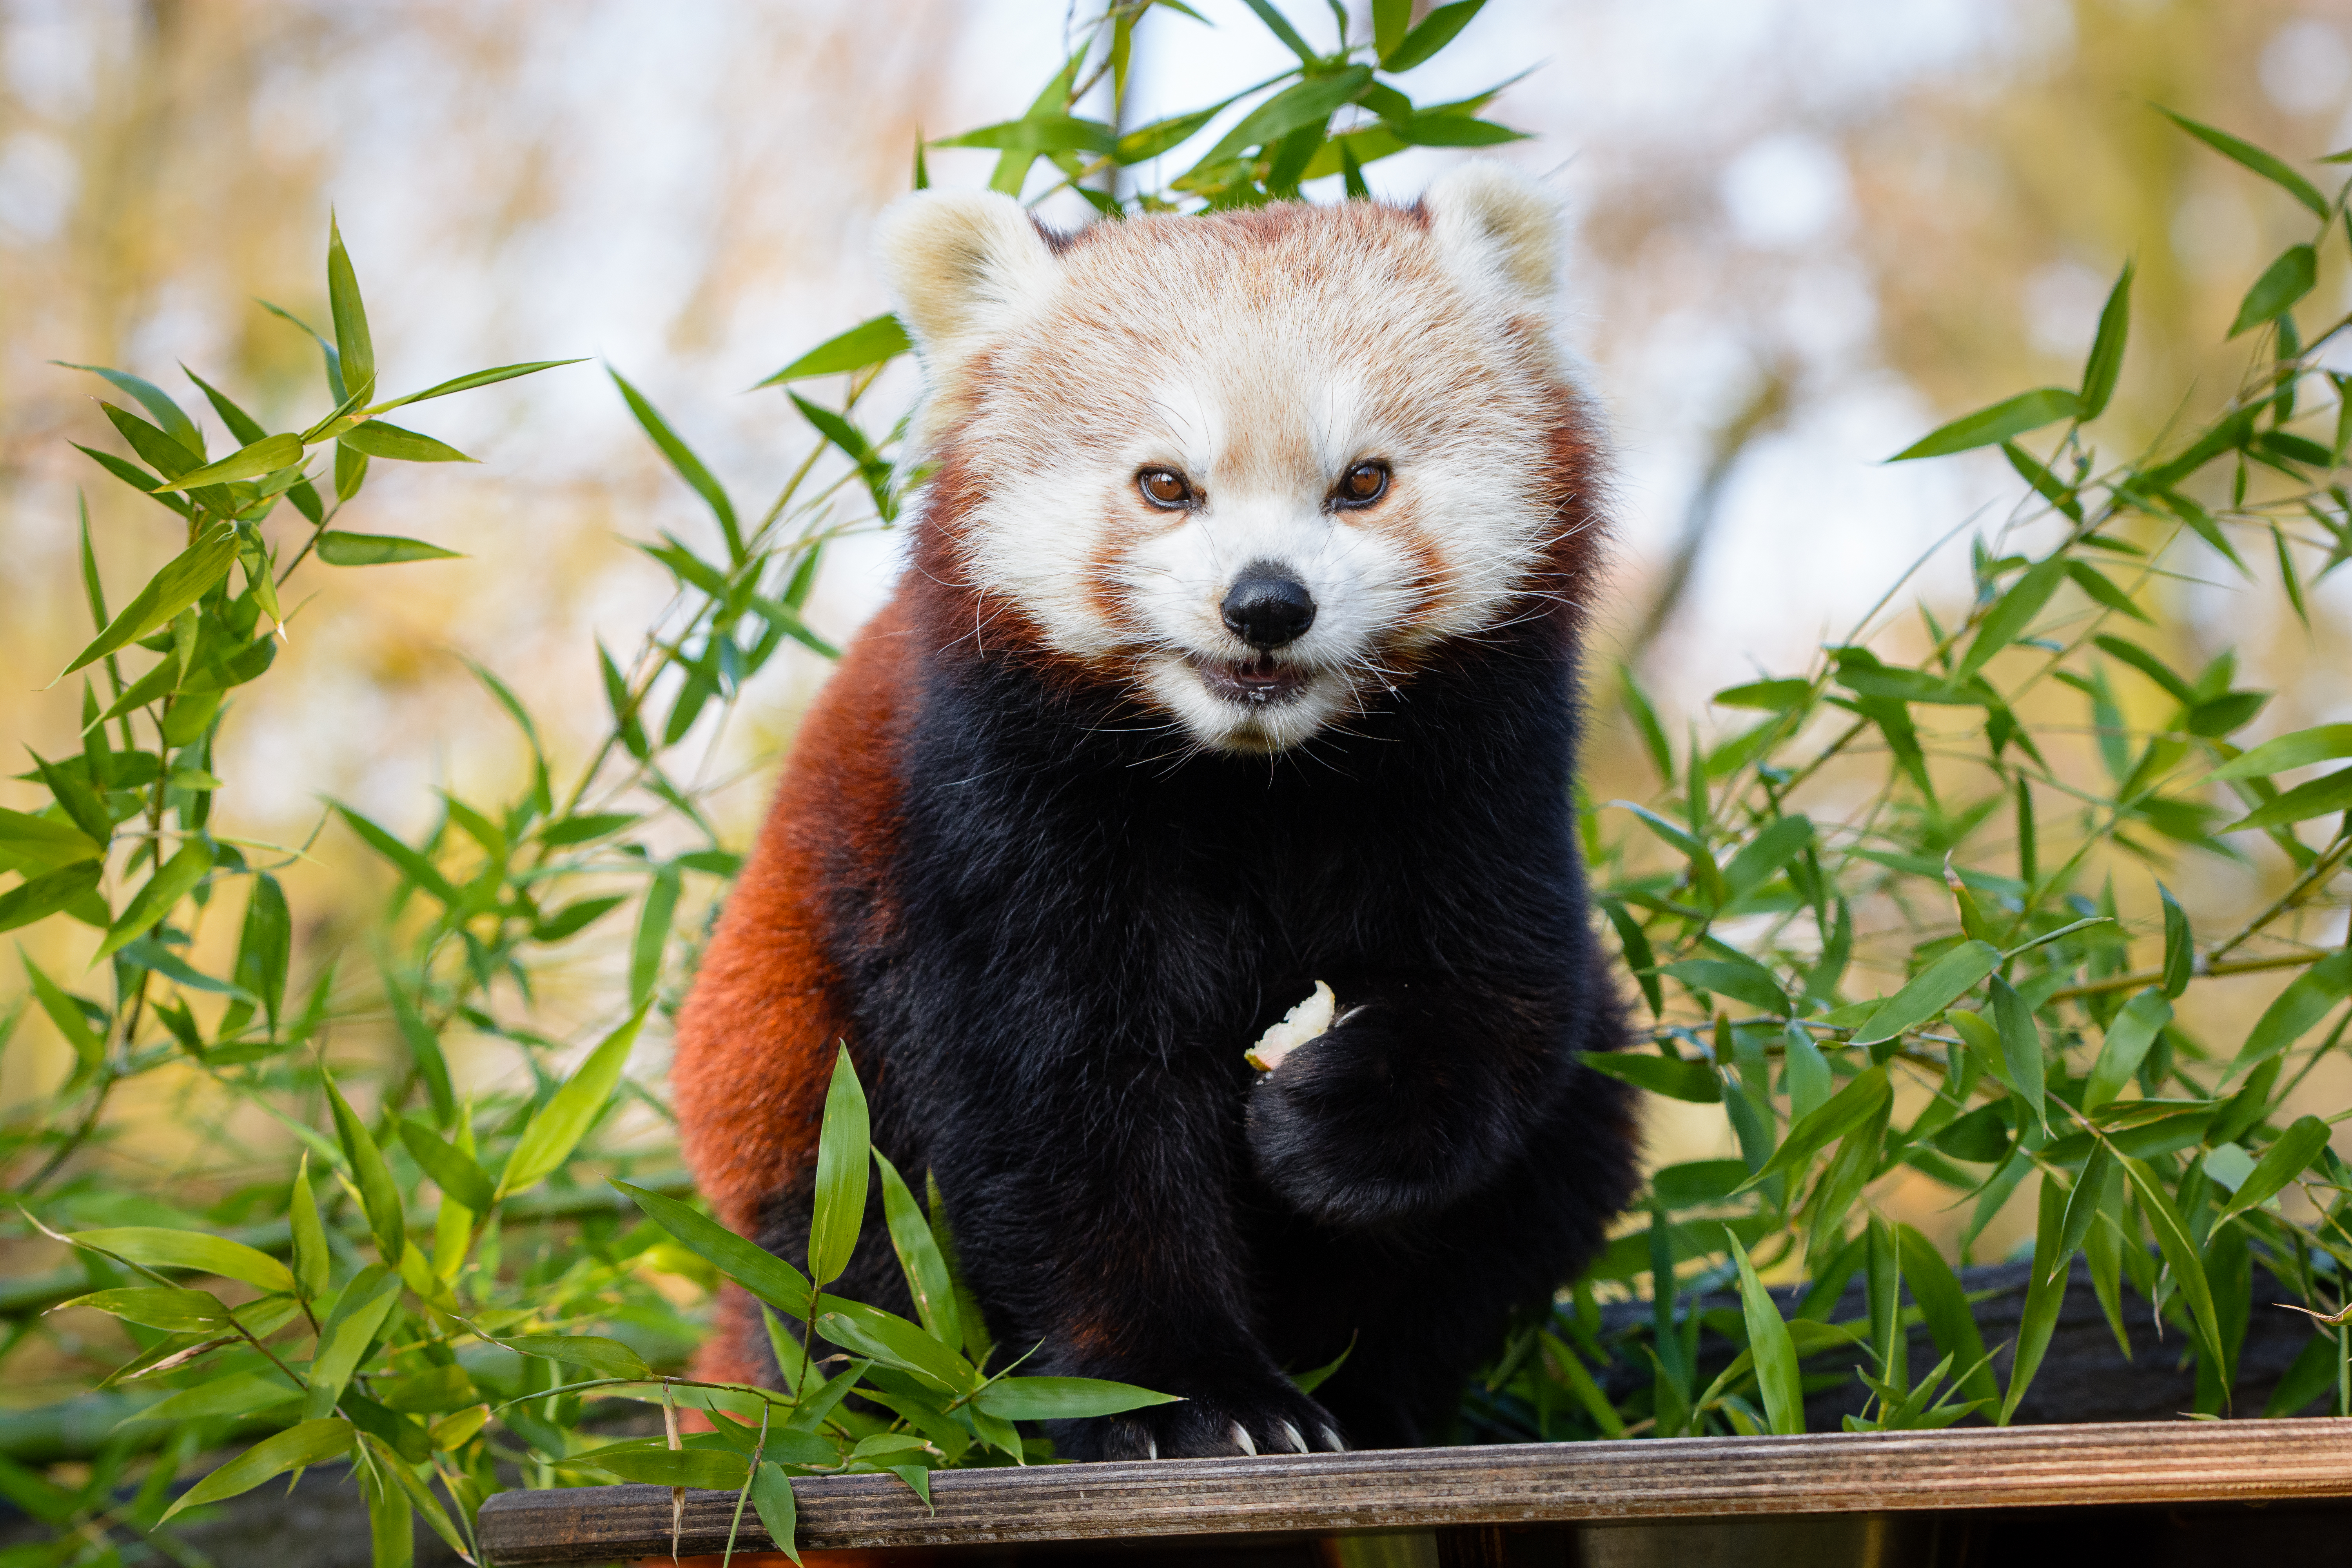 136335 download wallpaper Animals, Little Panda, Small Panda, Brown, Nice, Sweetheart, Animal, Bamboo, Branches screensavers and pictures for free